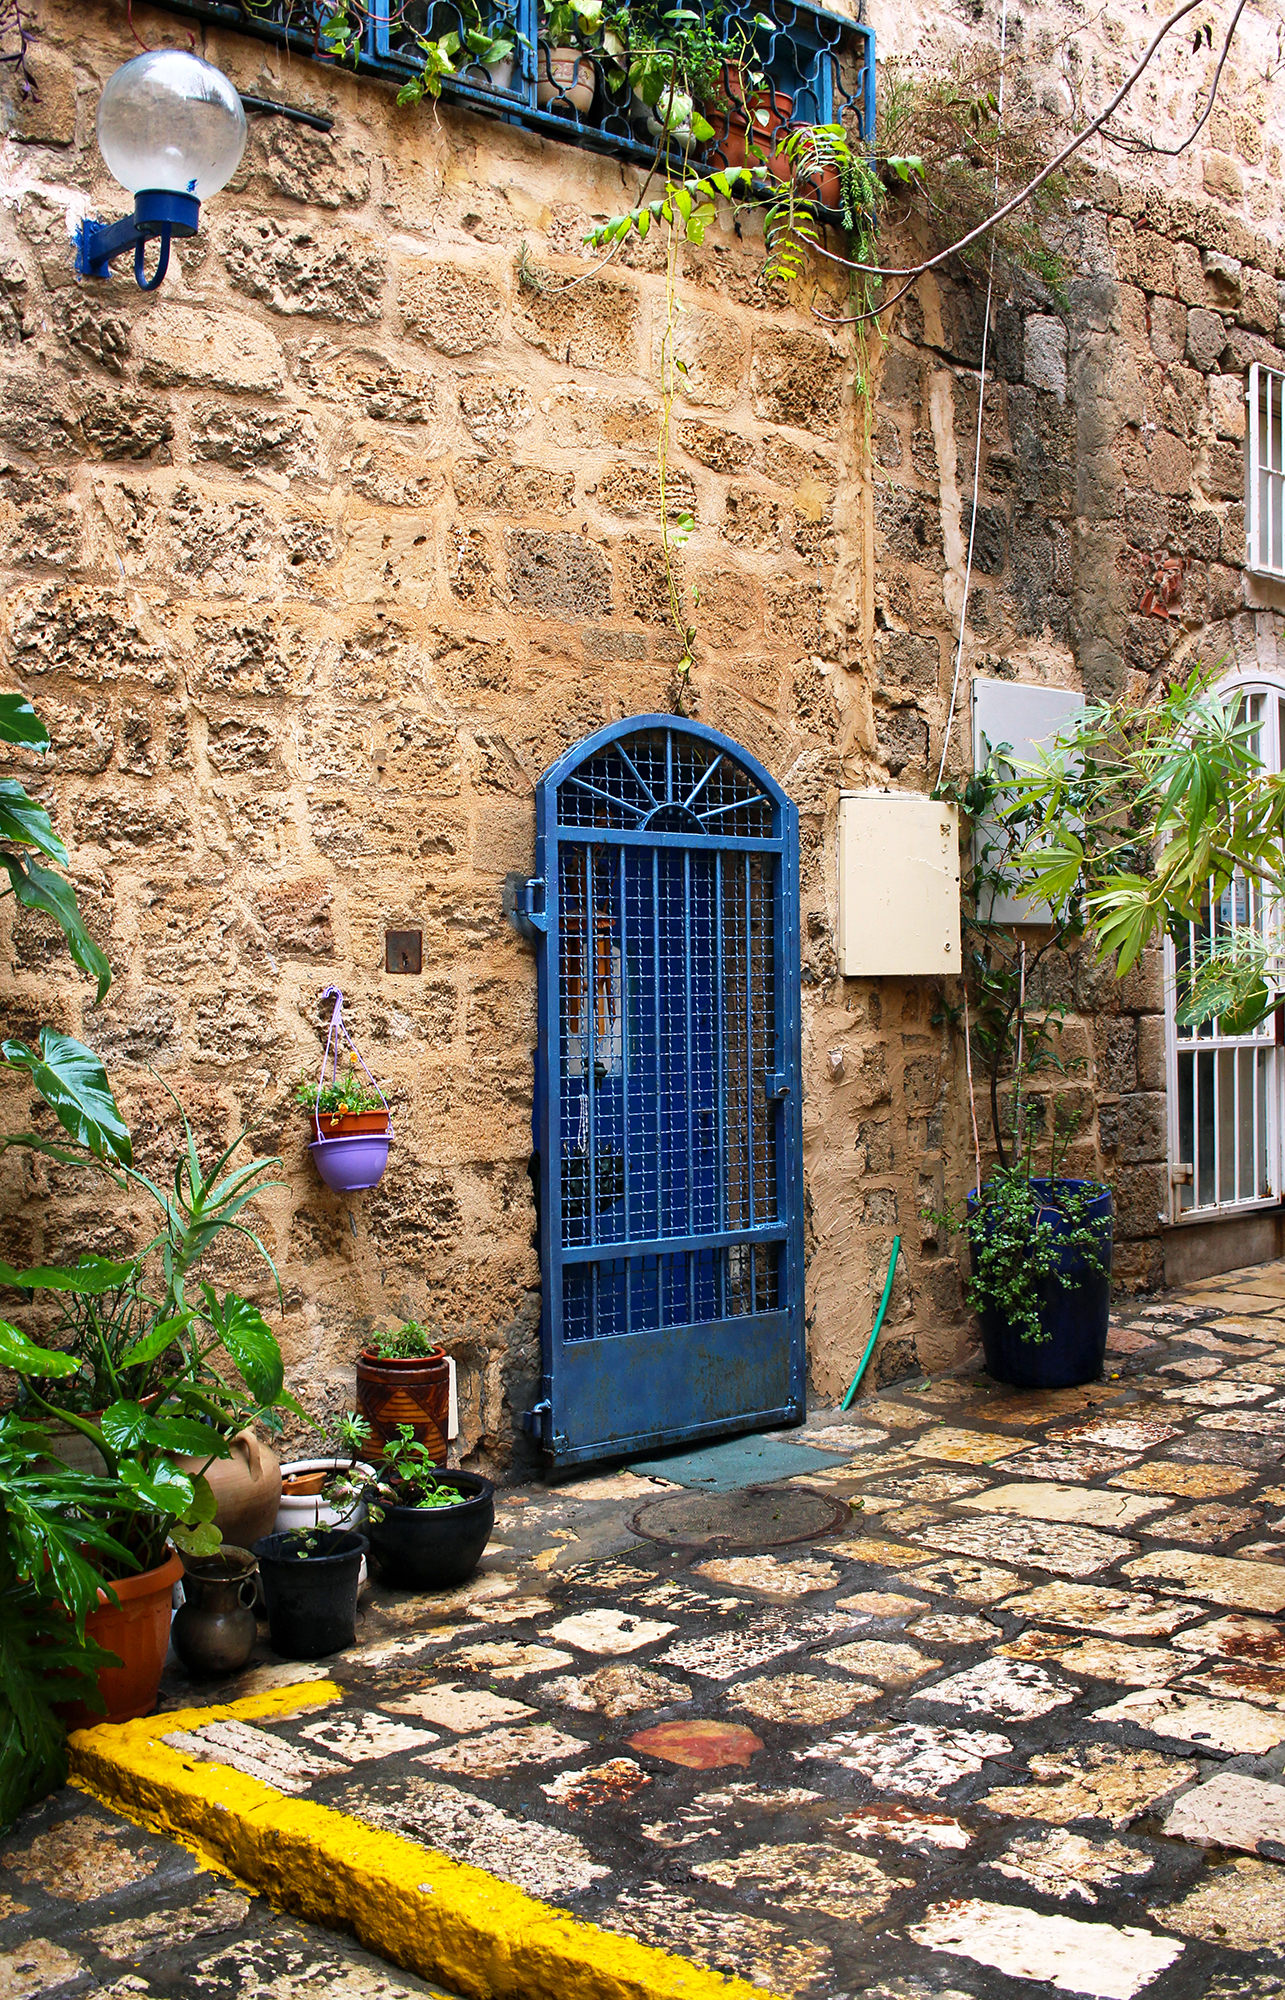 Old Jaffa artist district in Tel-Aviv, Israel. Travel photography by Geena Matuson @geenamatuson #thegirlmirage.